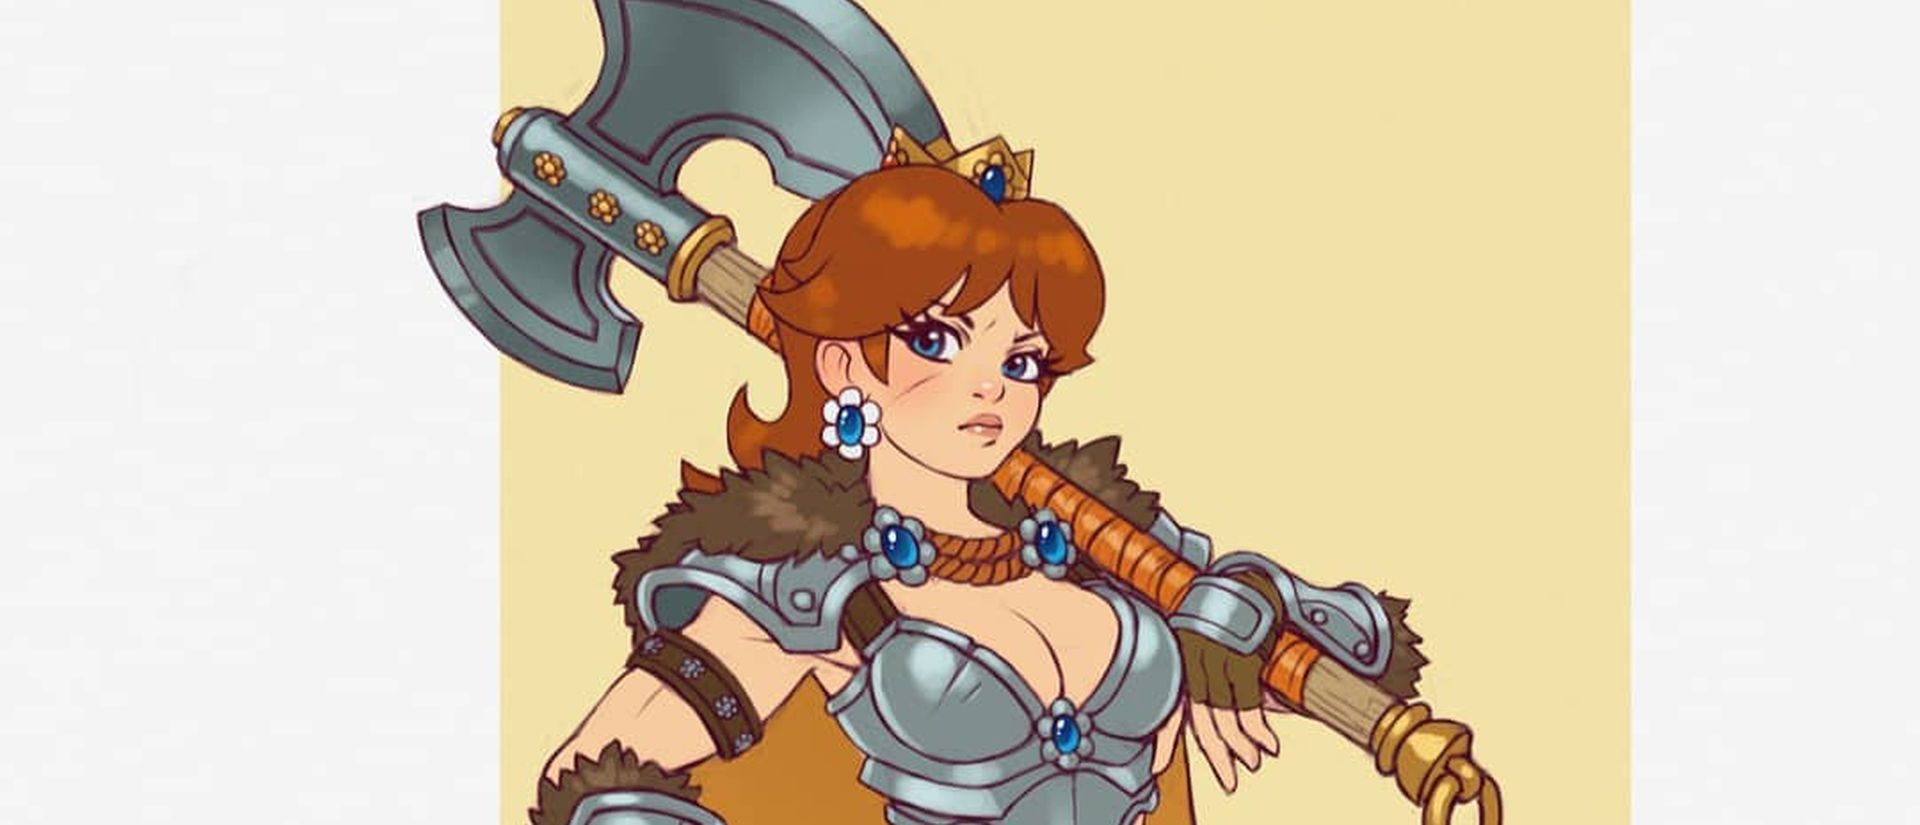 Fan Art Imagines Daisy From Super Mario As A Fearsome Warrior